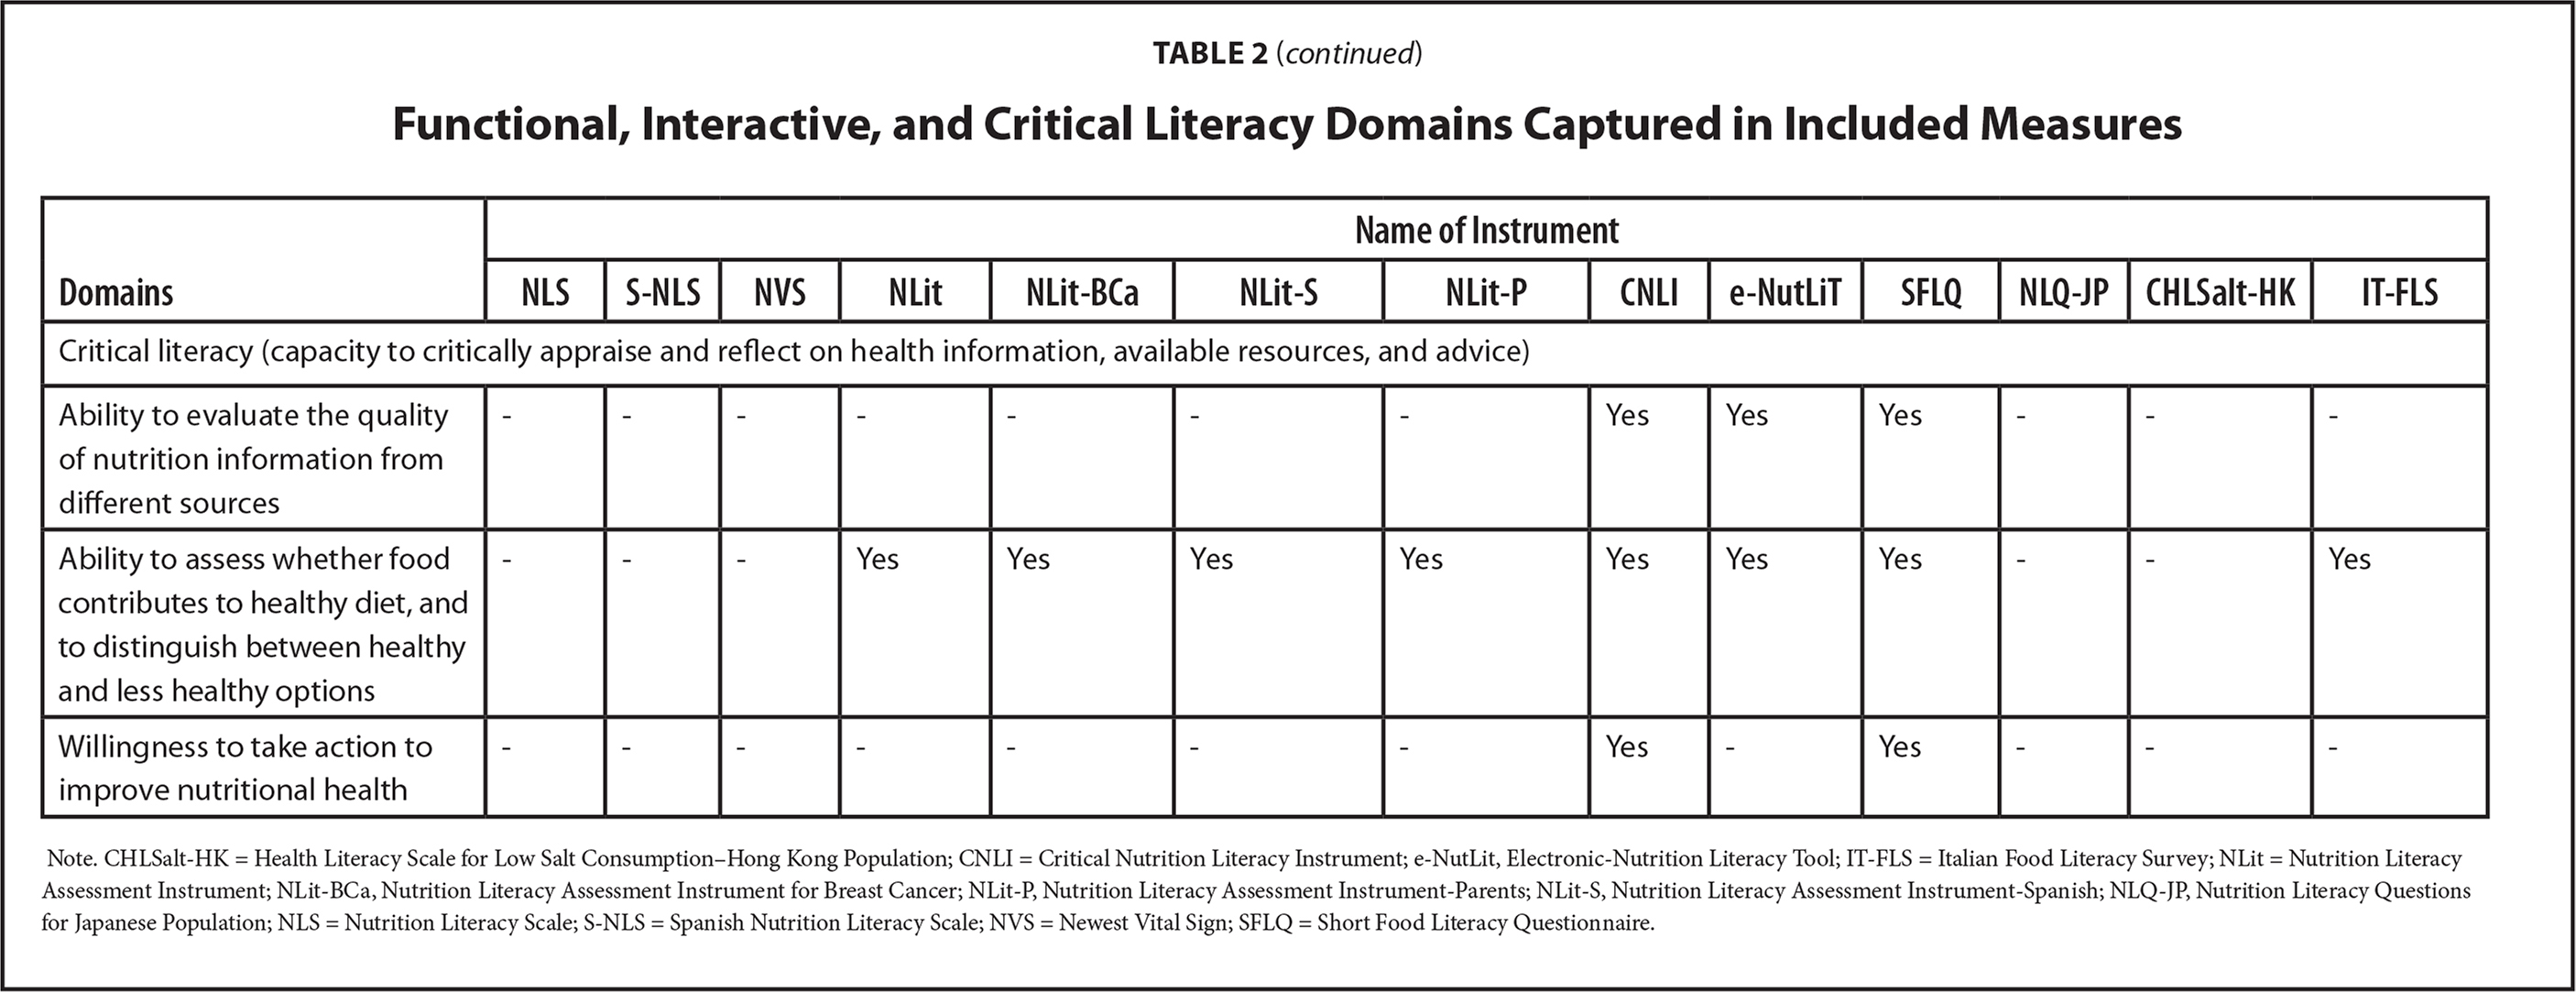 Functional, Interactive, and Critical Literacy Domains Captured in Included Measures